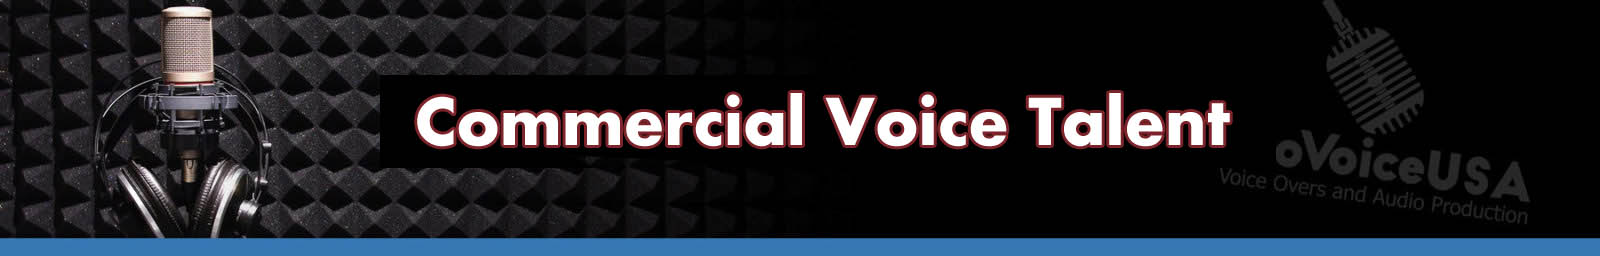 Commercial Voice Talent | American Voice Recording Service | ProVoice USA